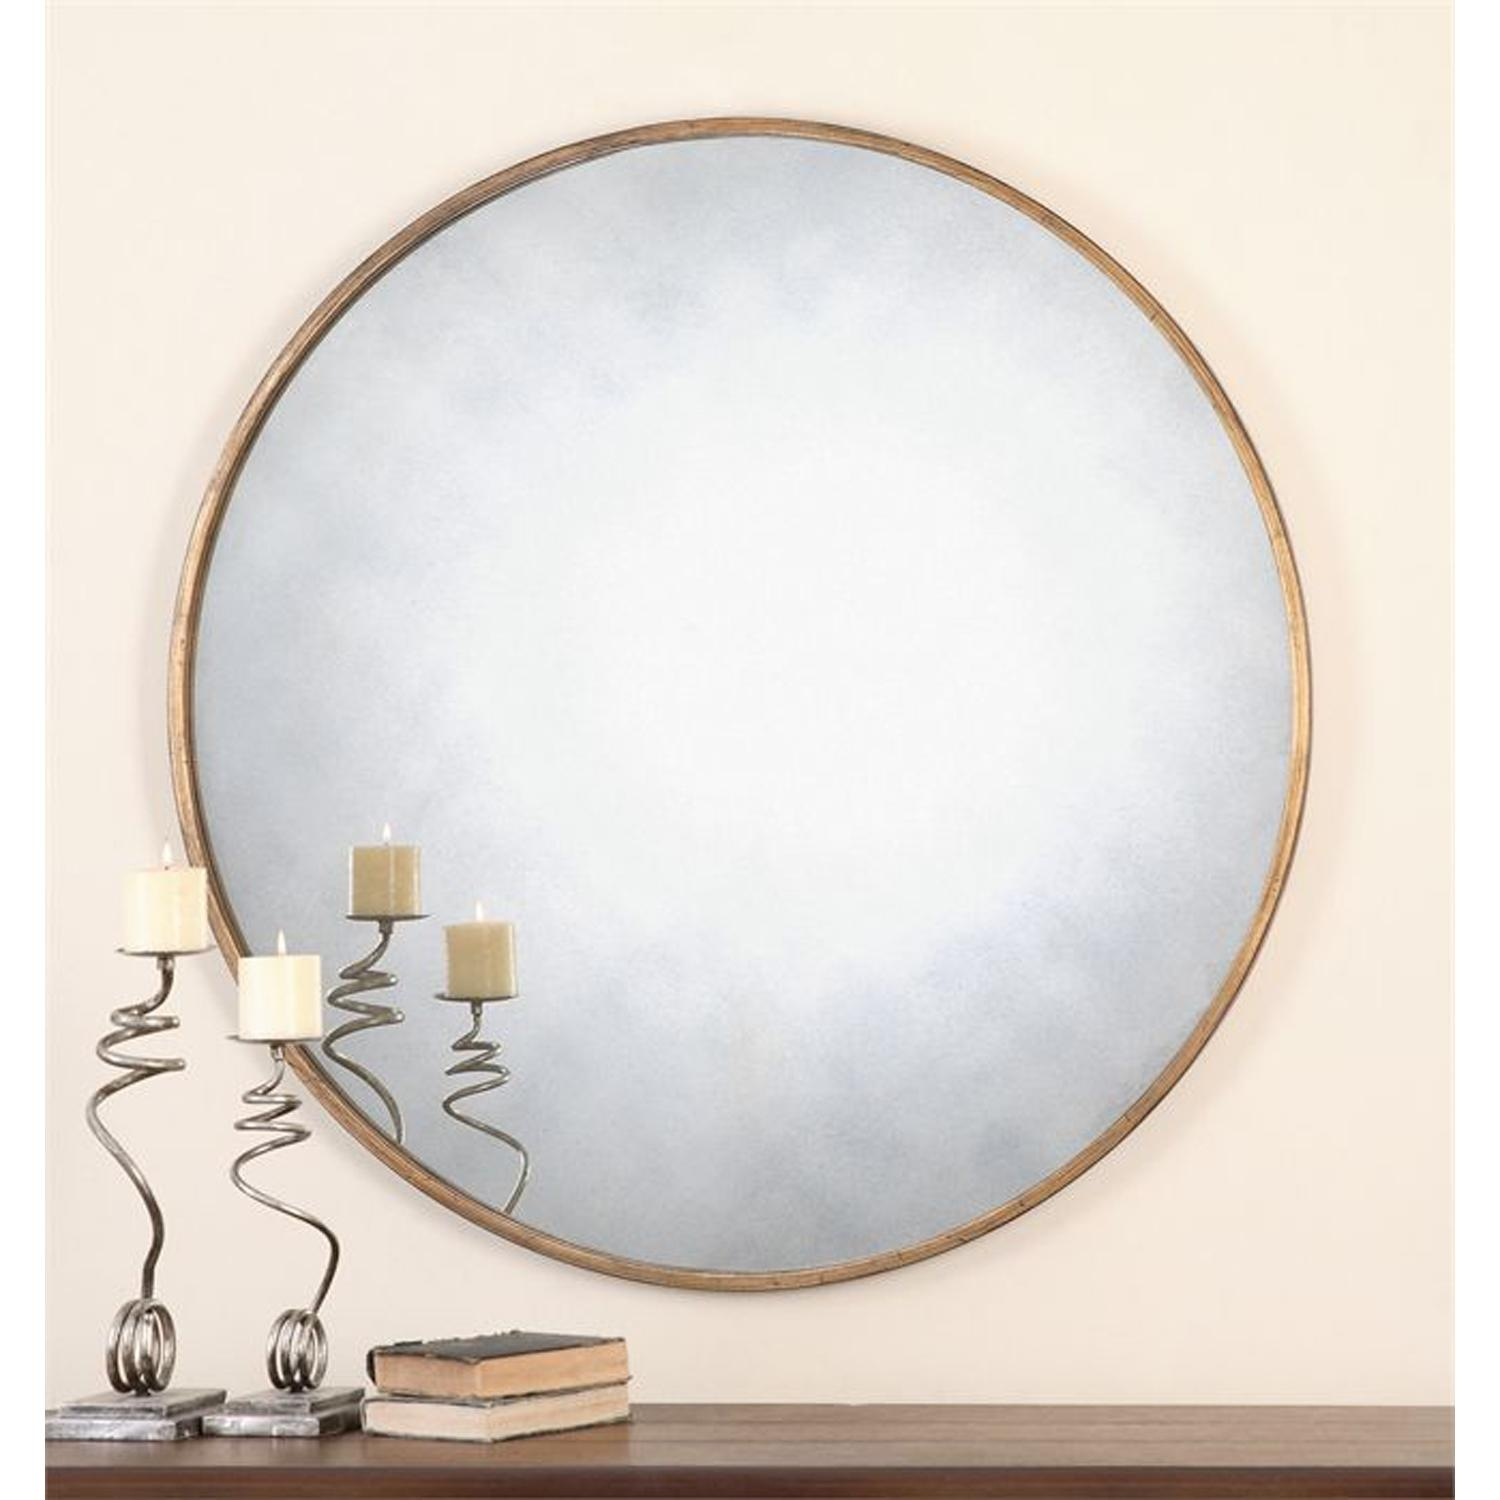 Junius Round Gold Round Mirror Uttermost Wall Mirror Mirrors Home Within Gold Round Mirrors (Image 9 of 20)